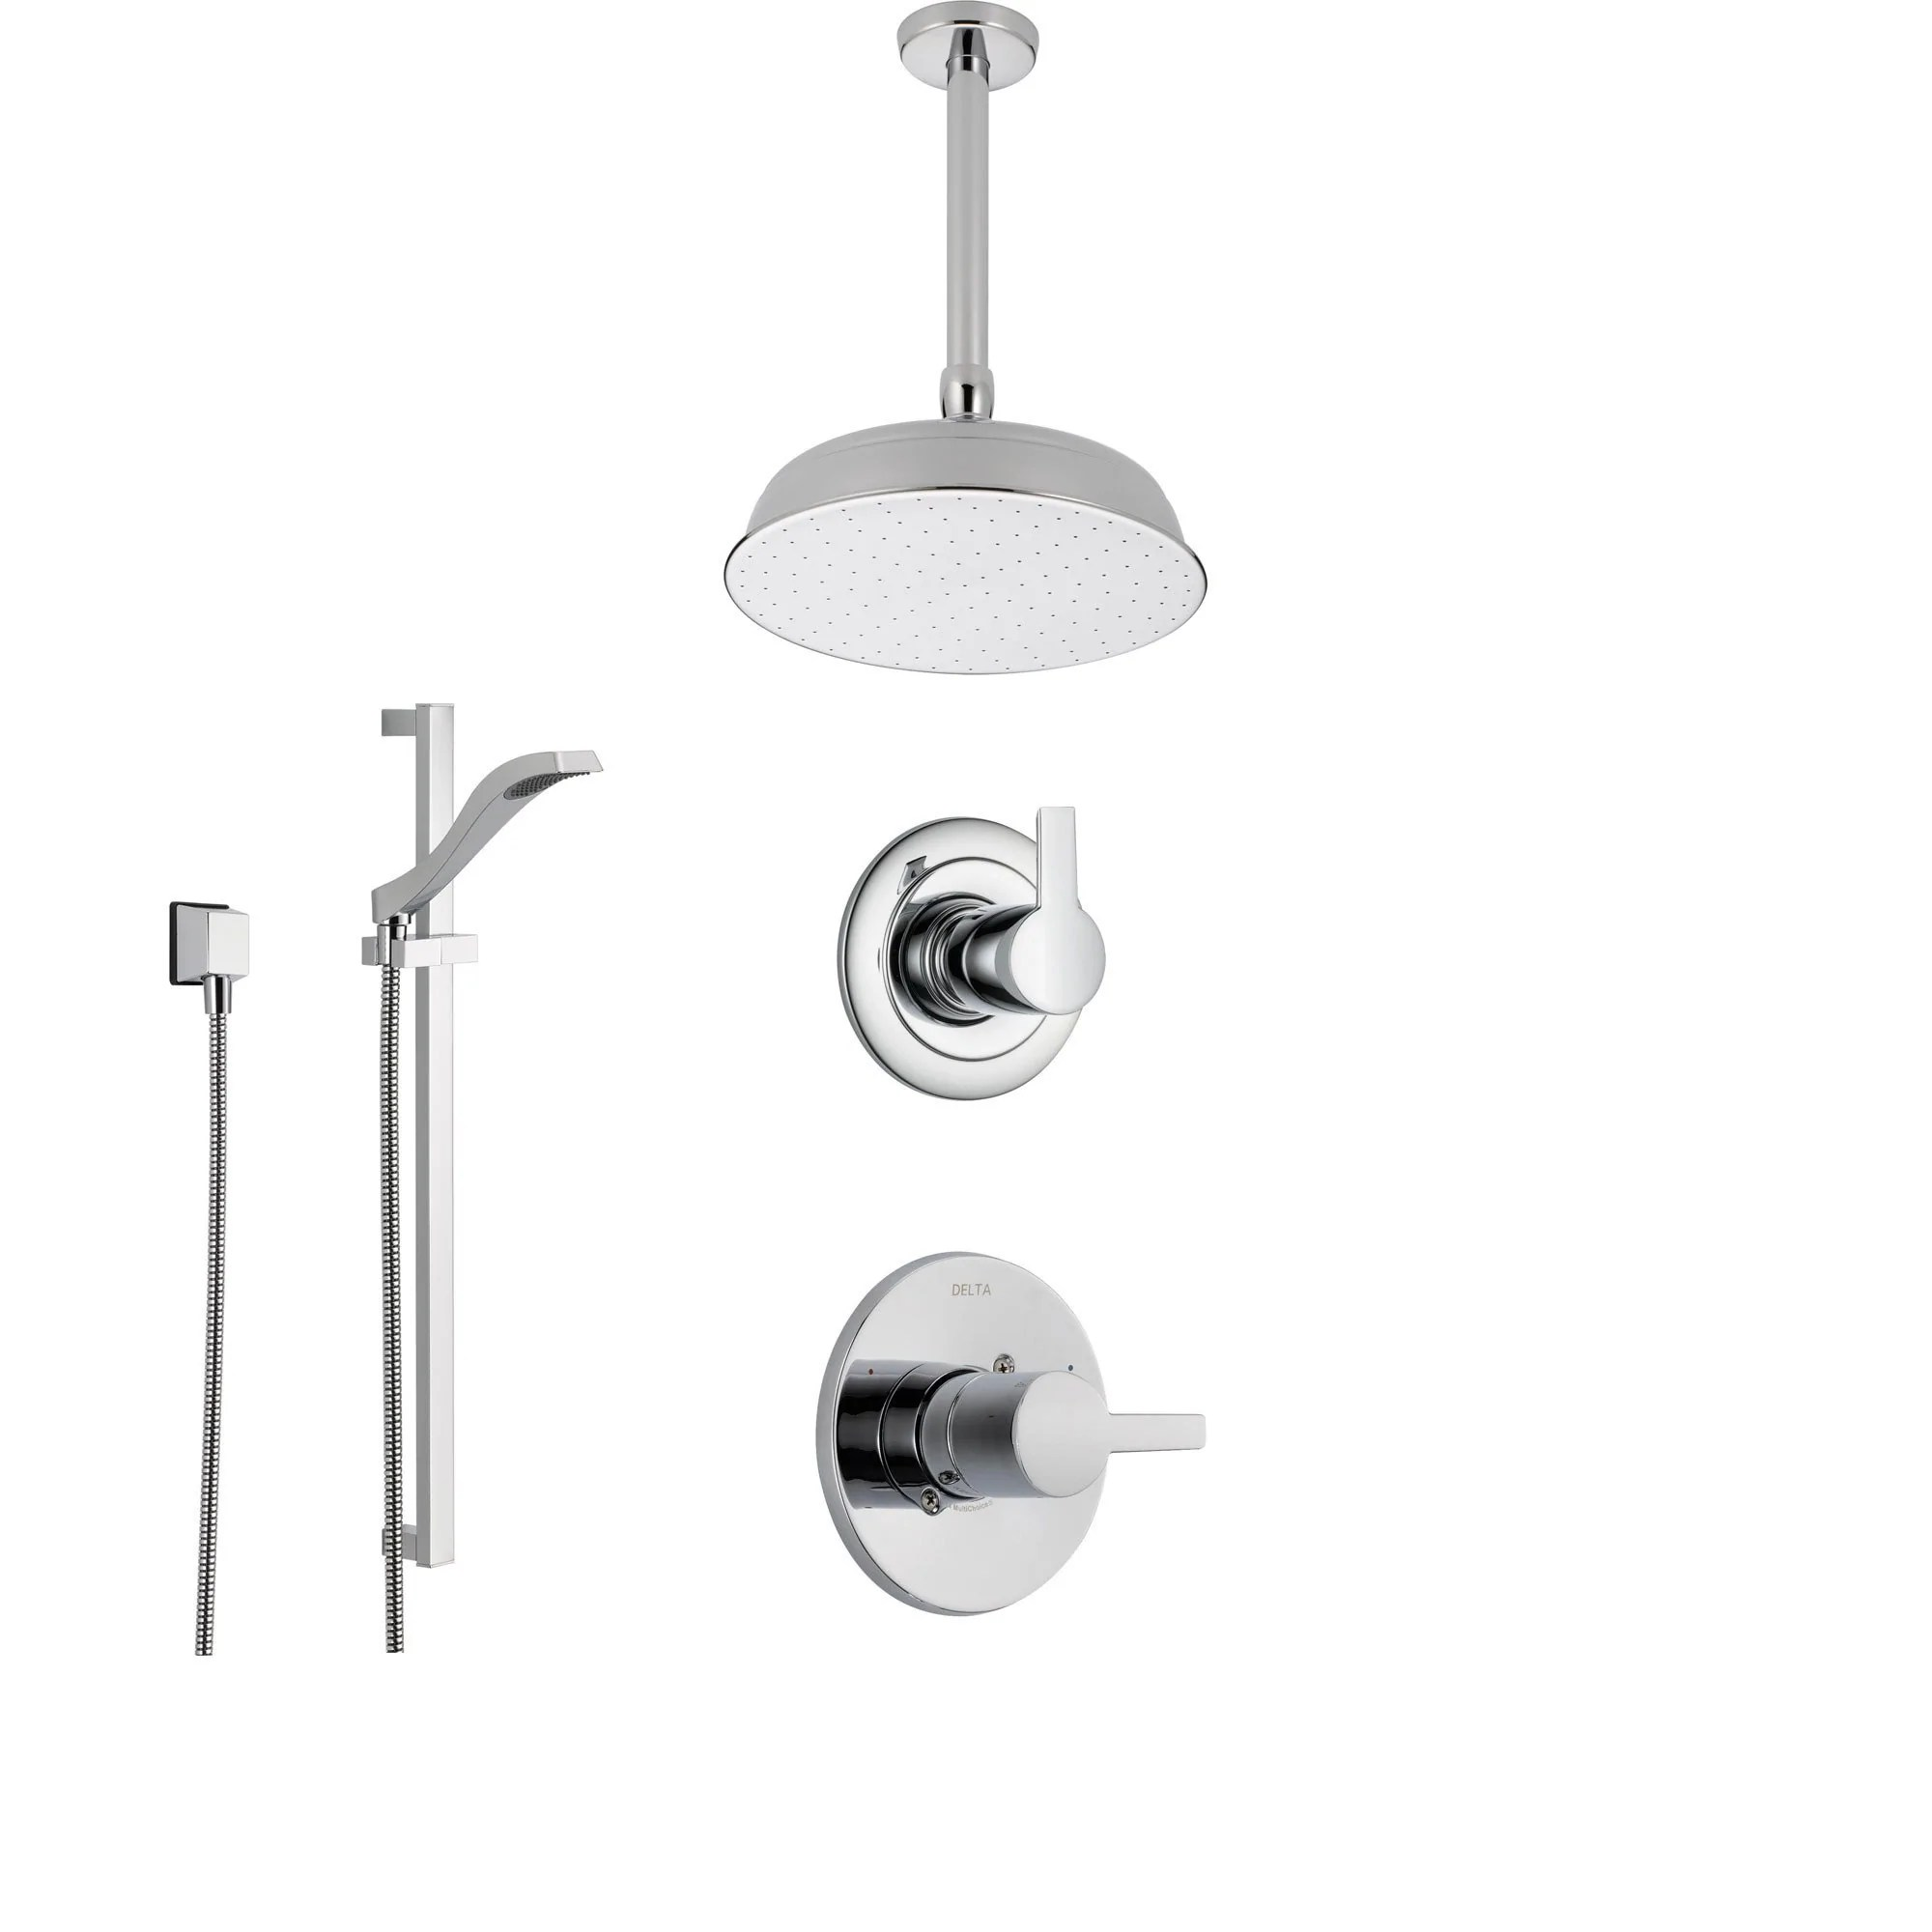 Delta Compel Chrome Shower System With Normal Shower Handle 3 Setting Diverter Ceiling Mount Large Rain Showerhead And Handheld Spray Ss146181